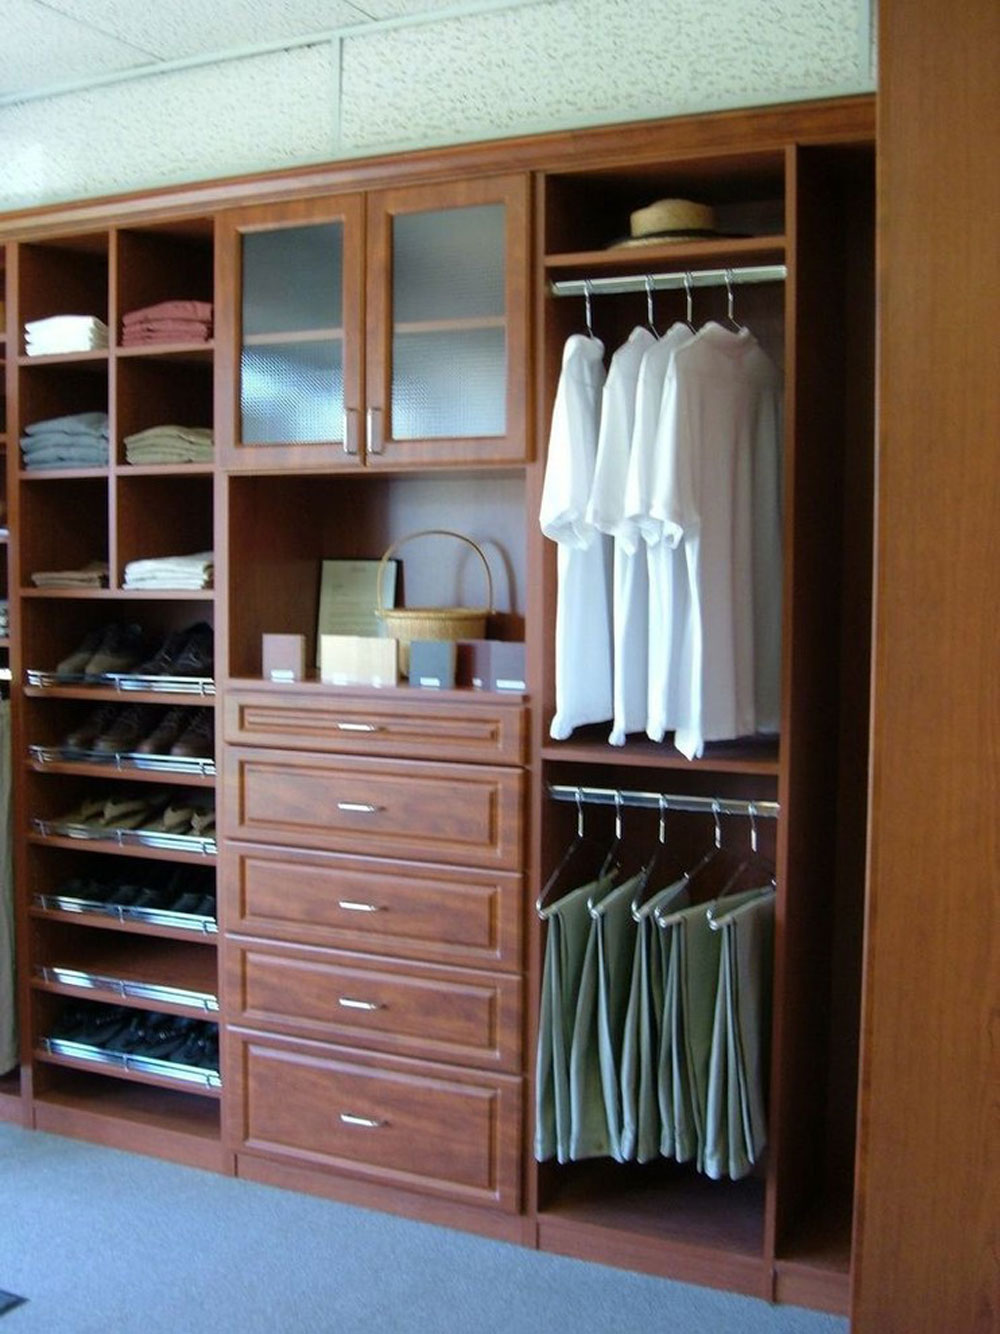 151 design ideas for the master bedroom closet